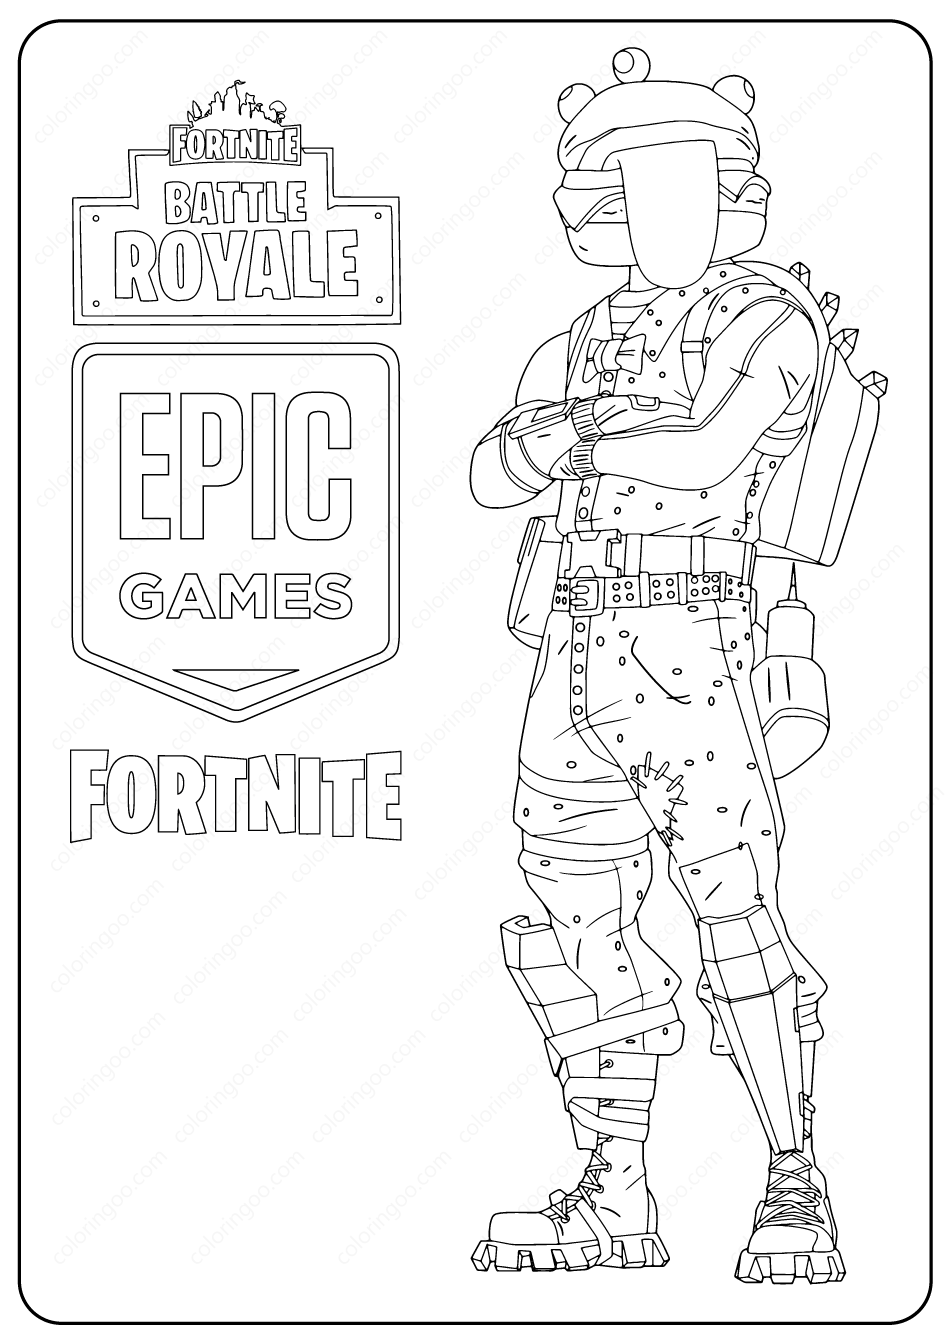 Free Printable Fortnite Beef Boss Skin Coloring Pages